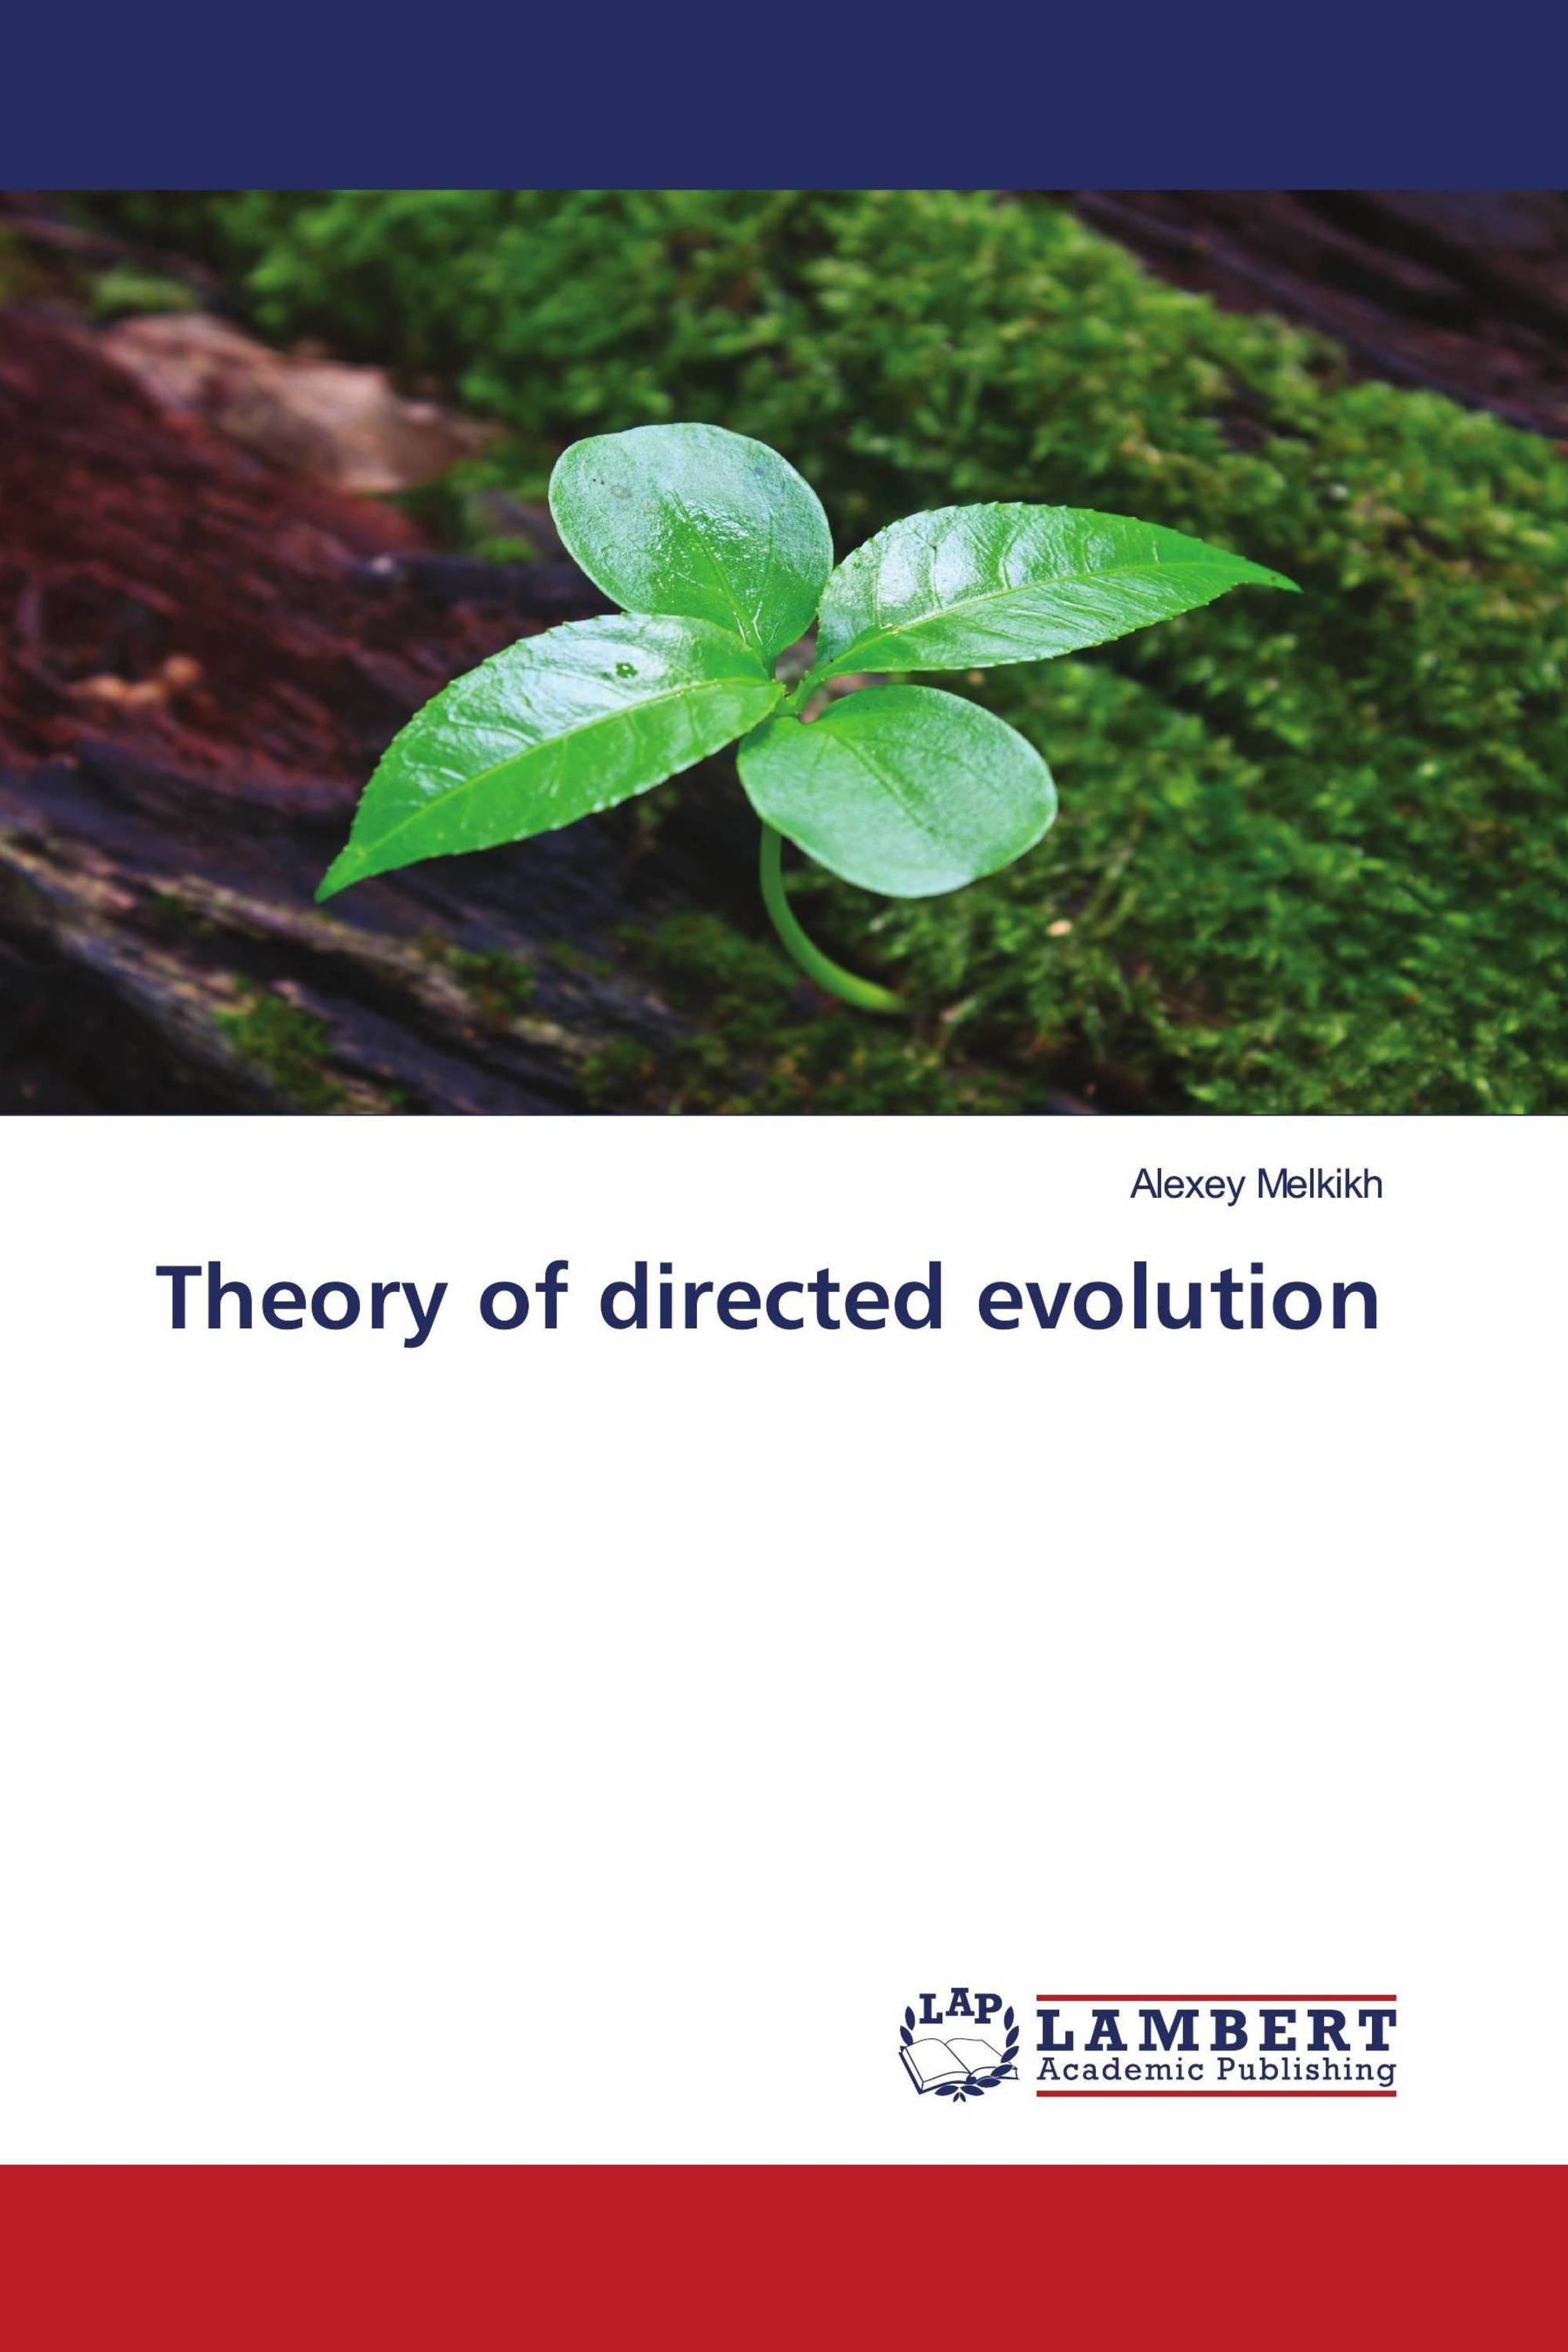 Theory of directed evolution